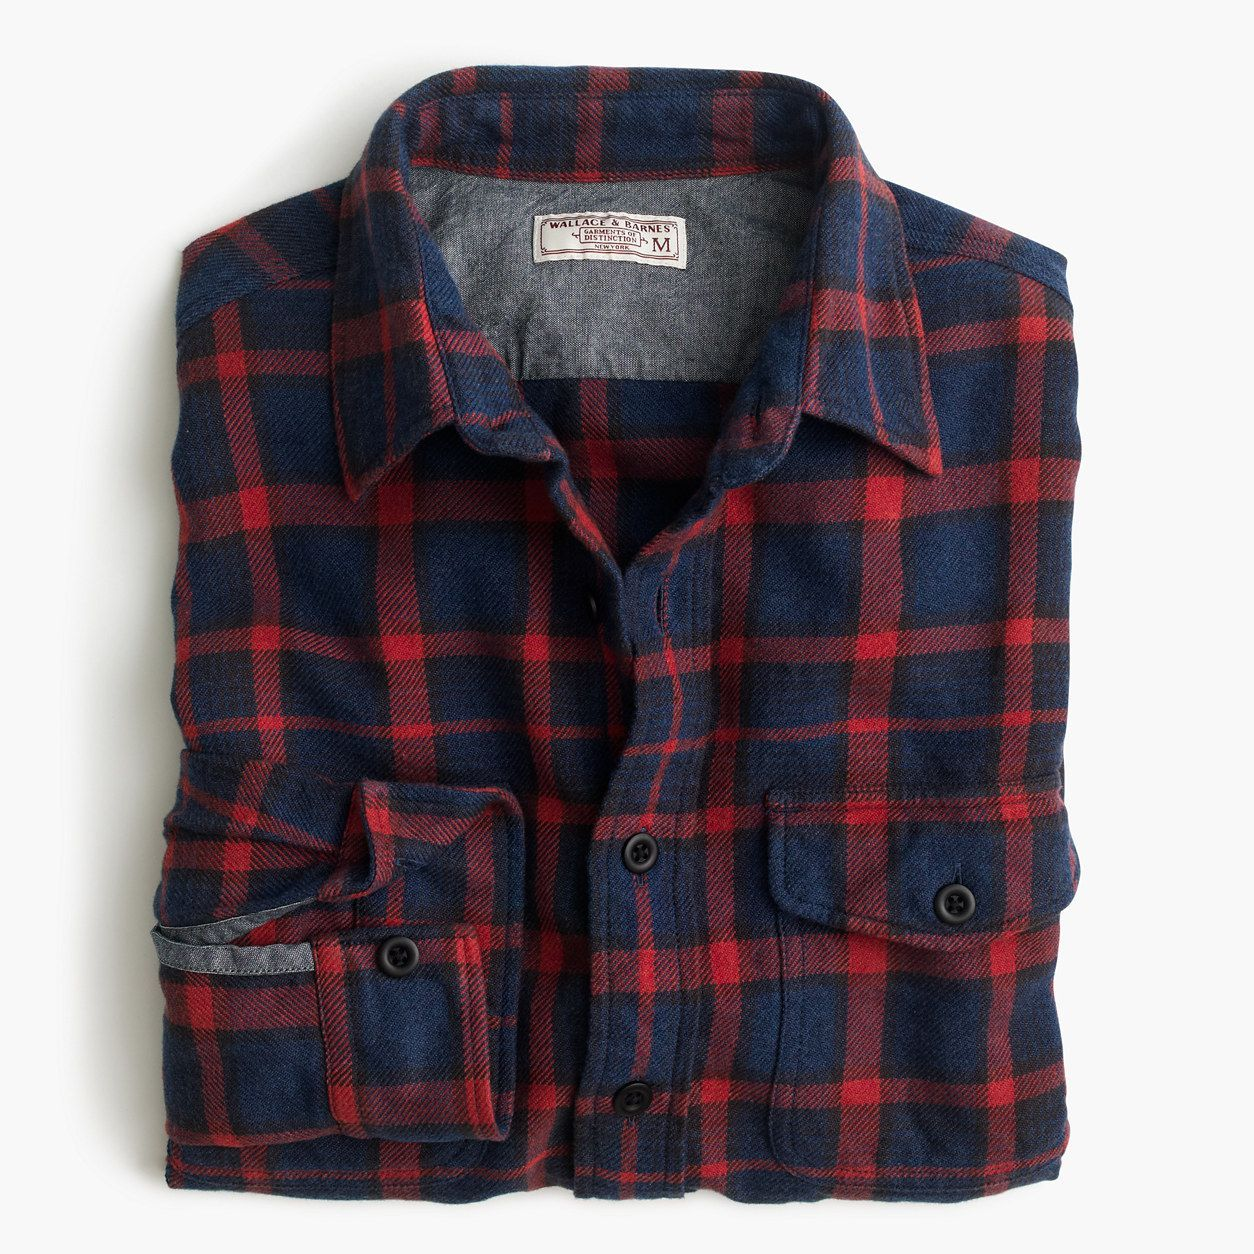 Navy blue flannel shirt womens  Wallace u Barnes flannel shirt in navyandred plaid  Products